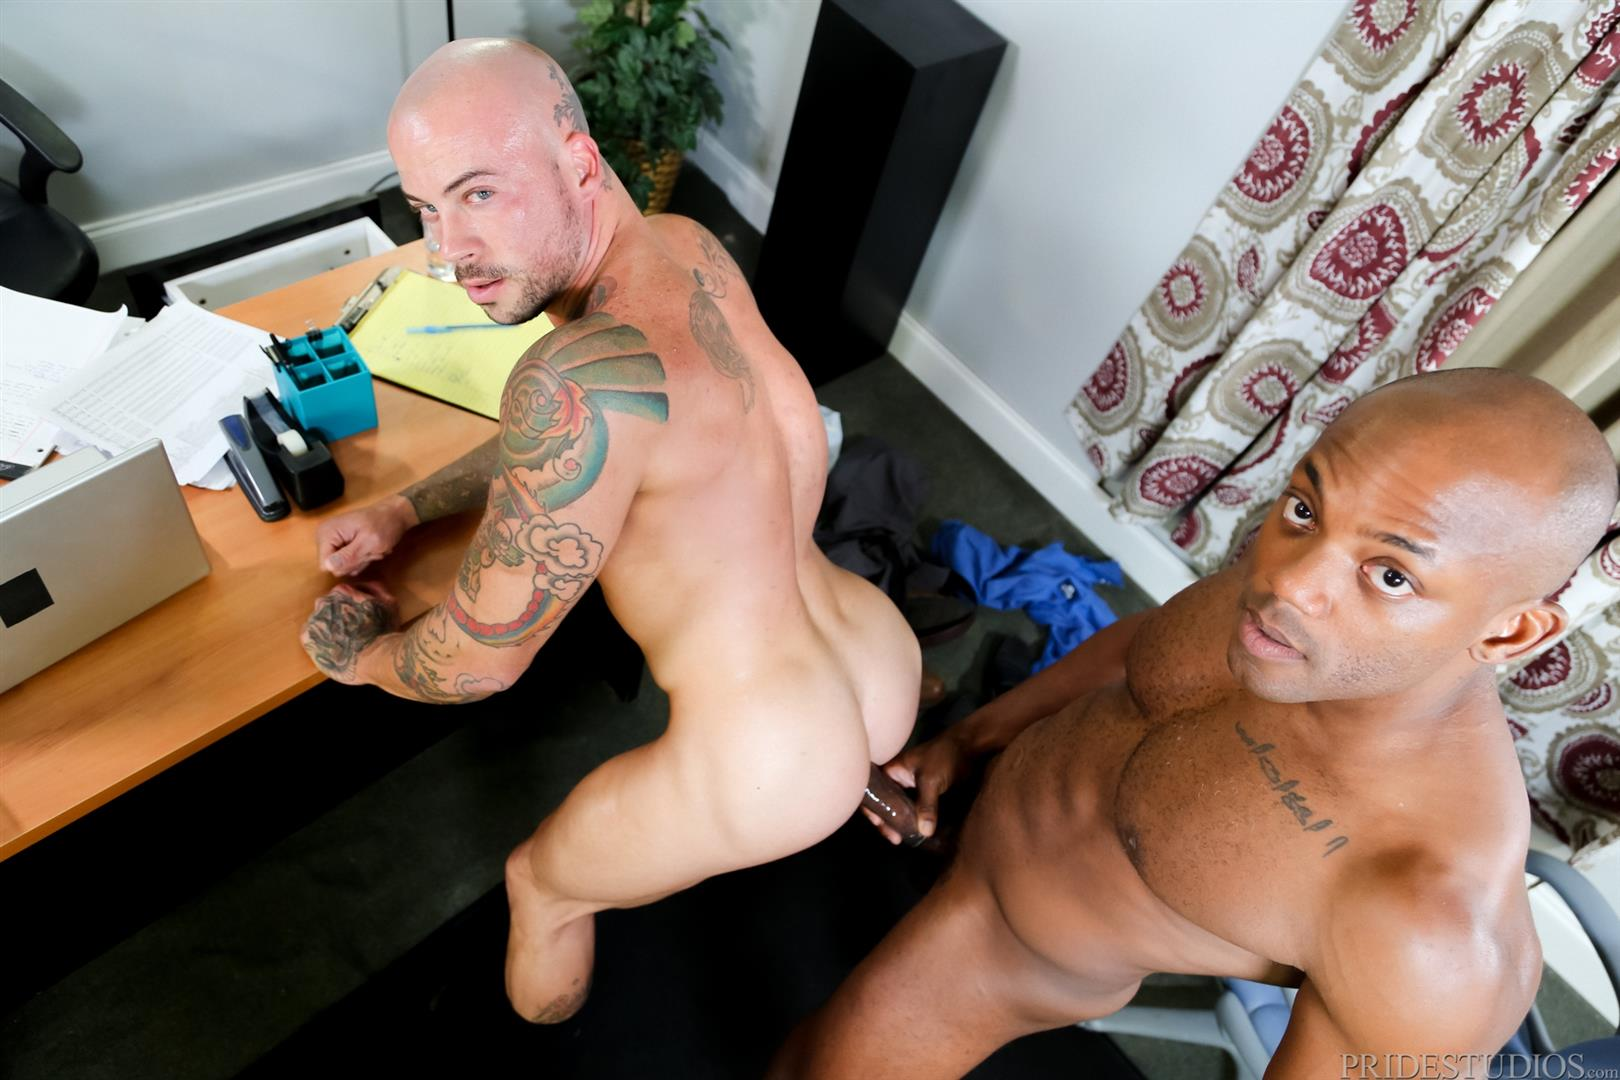 Sean-Duran-and-Osiris-Blade-Extra-Big-Dicks-Black-Cock-Interracial-Amateur-Gay-Porn-14 White Muscle Hunk Takes A Big Black Cock Up The Ass During A Job Interview